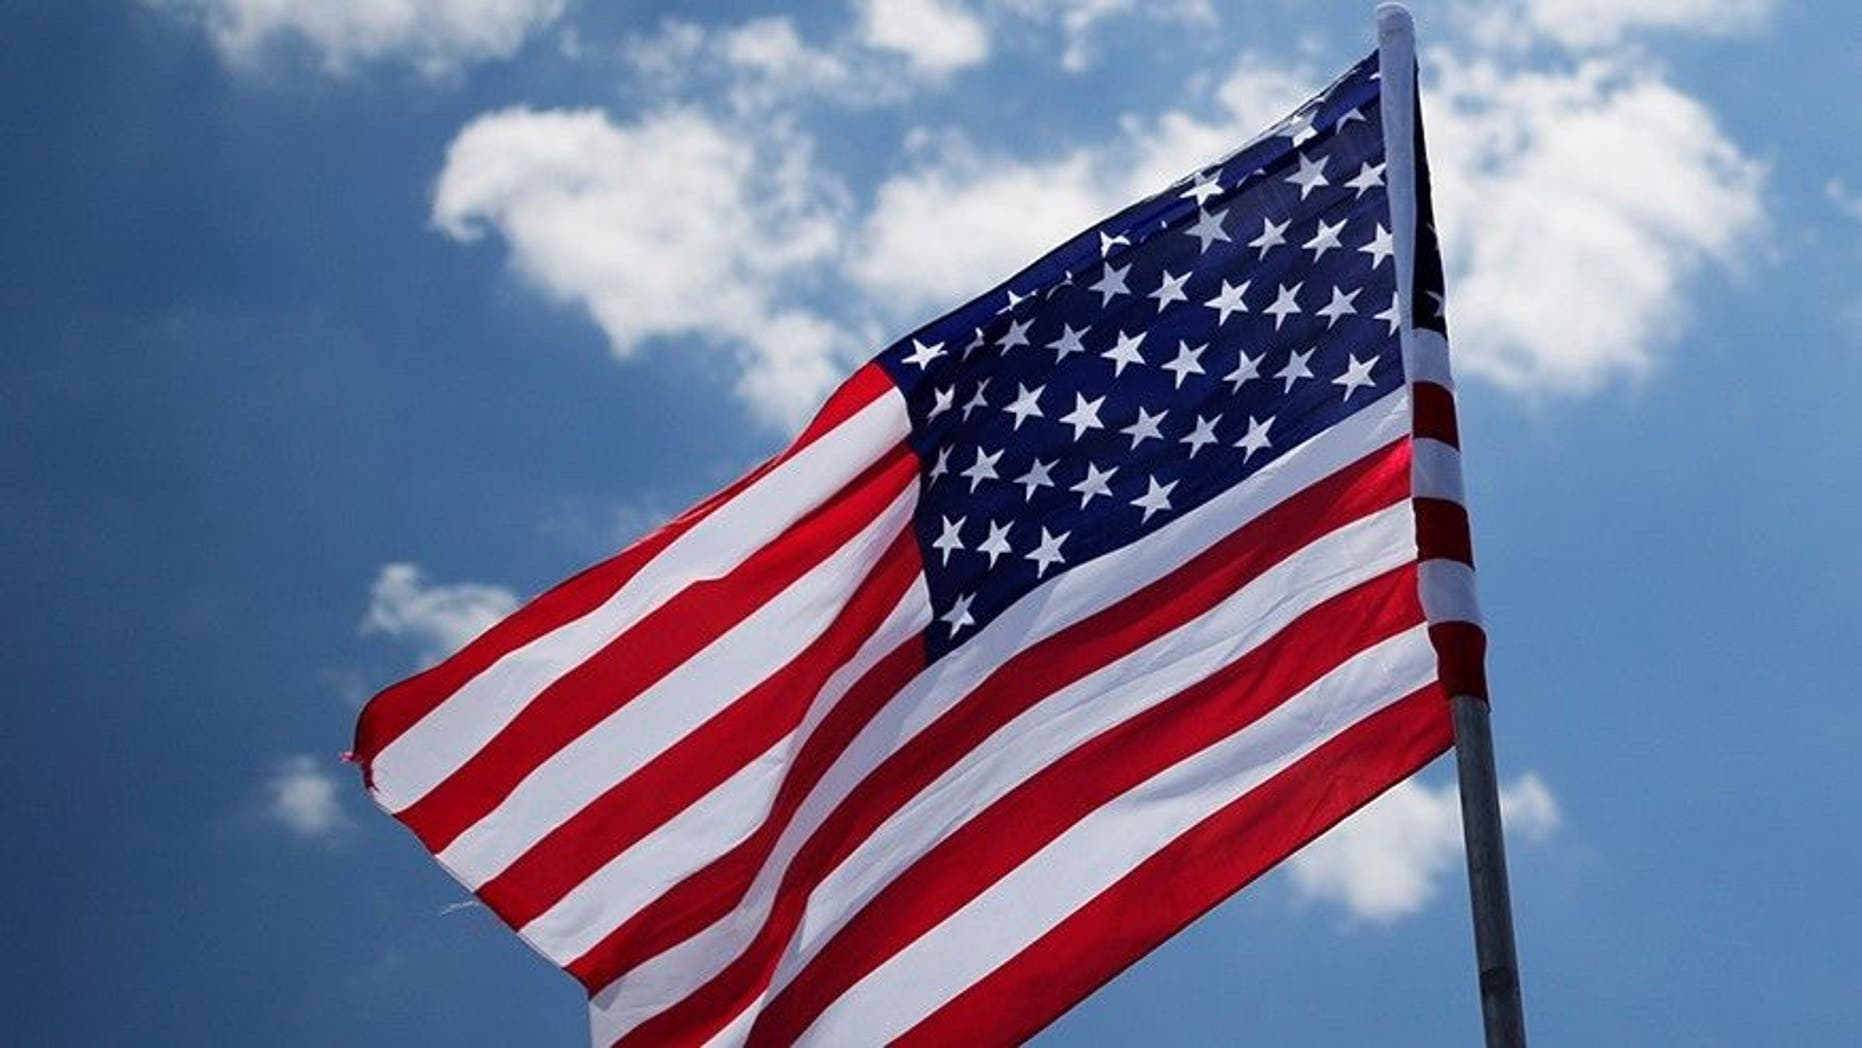 Flag Day Facts 10 Things You Didn T Know About The American